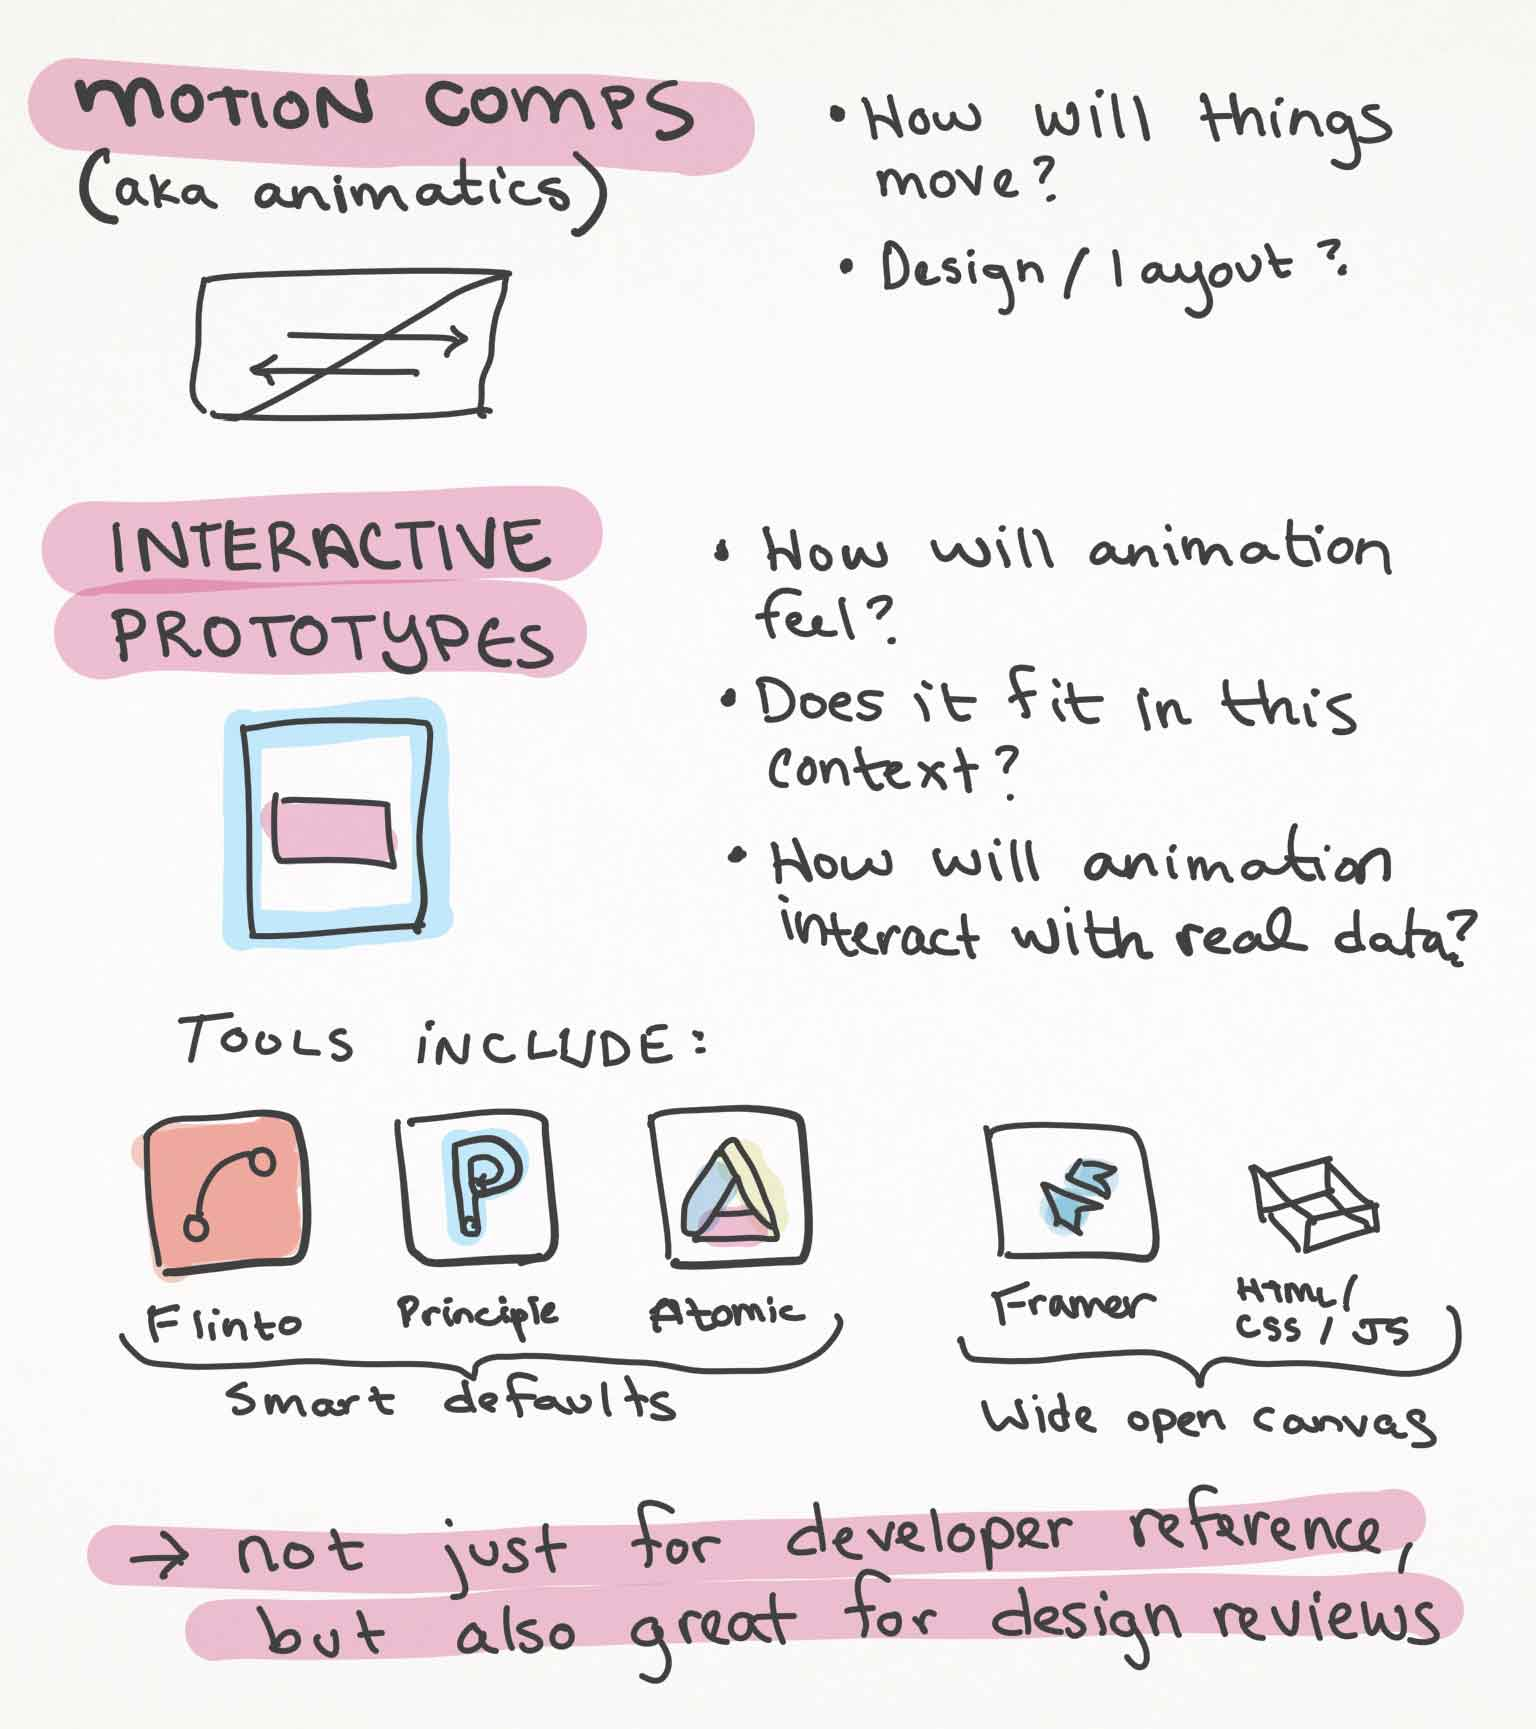 Sketchnotes page 2 from val head's talk